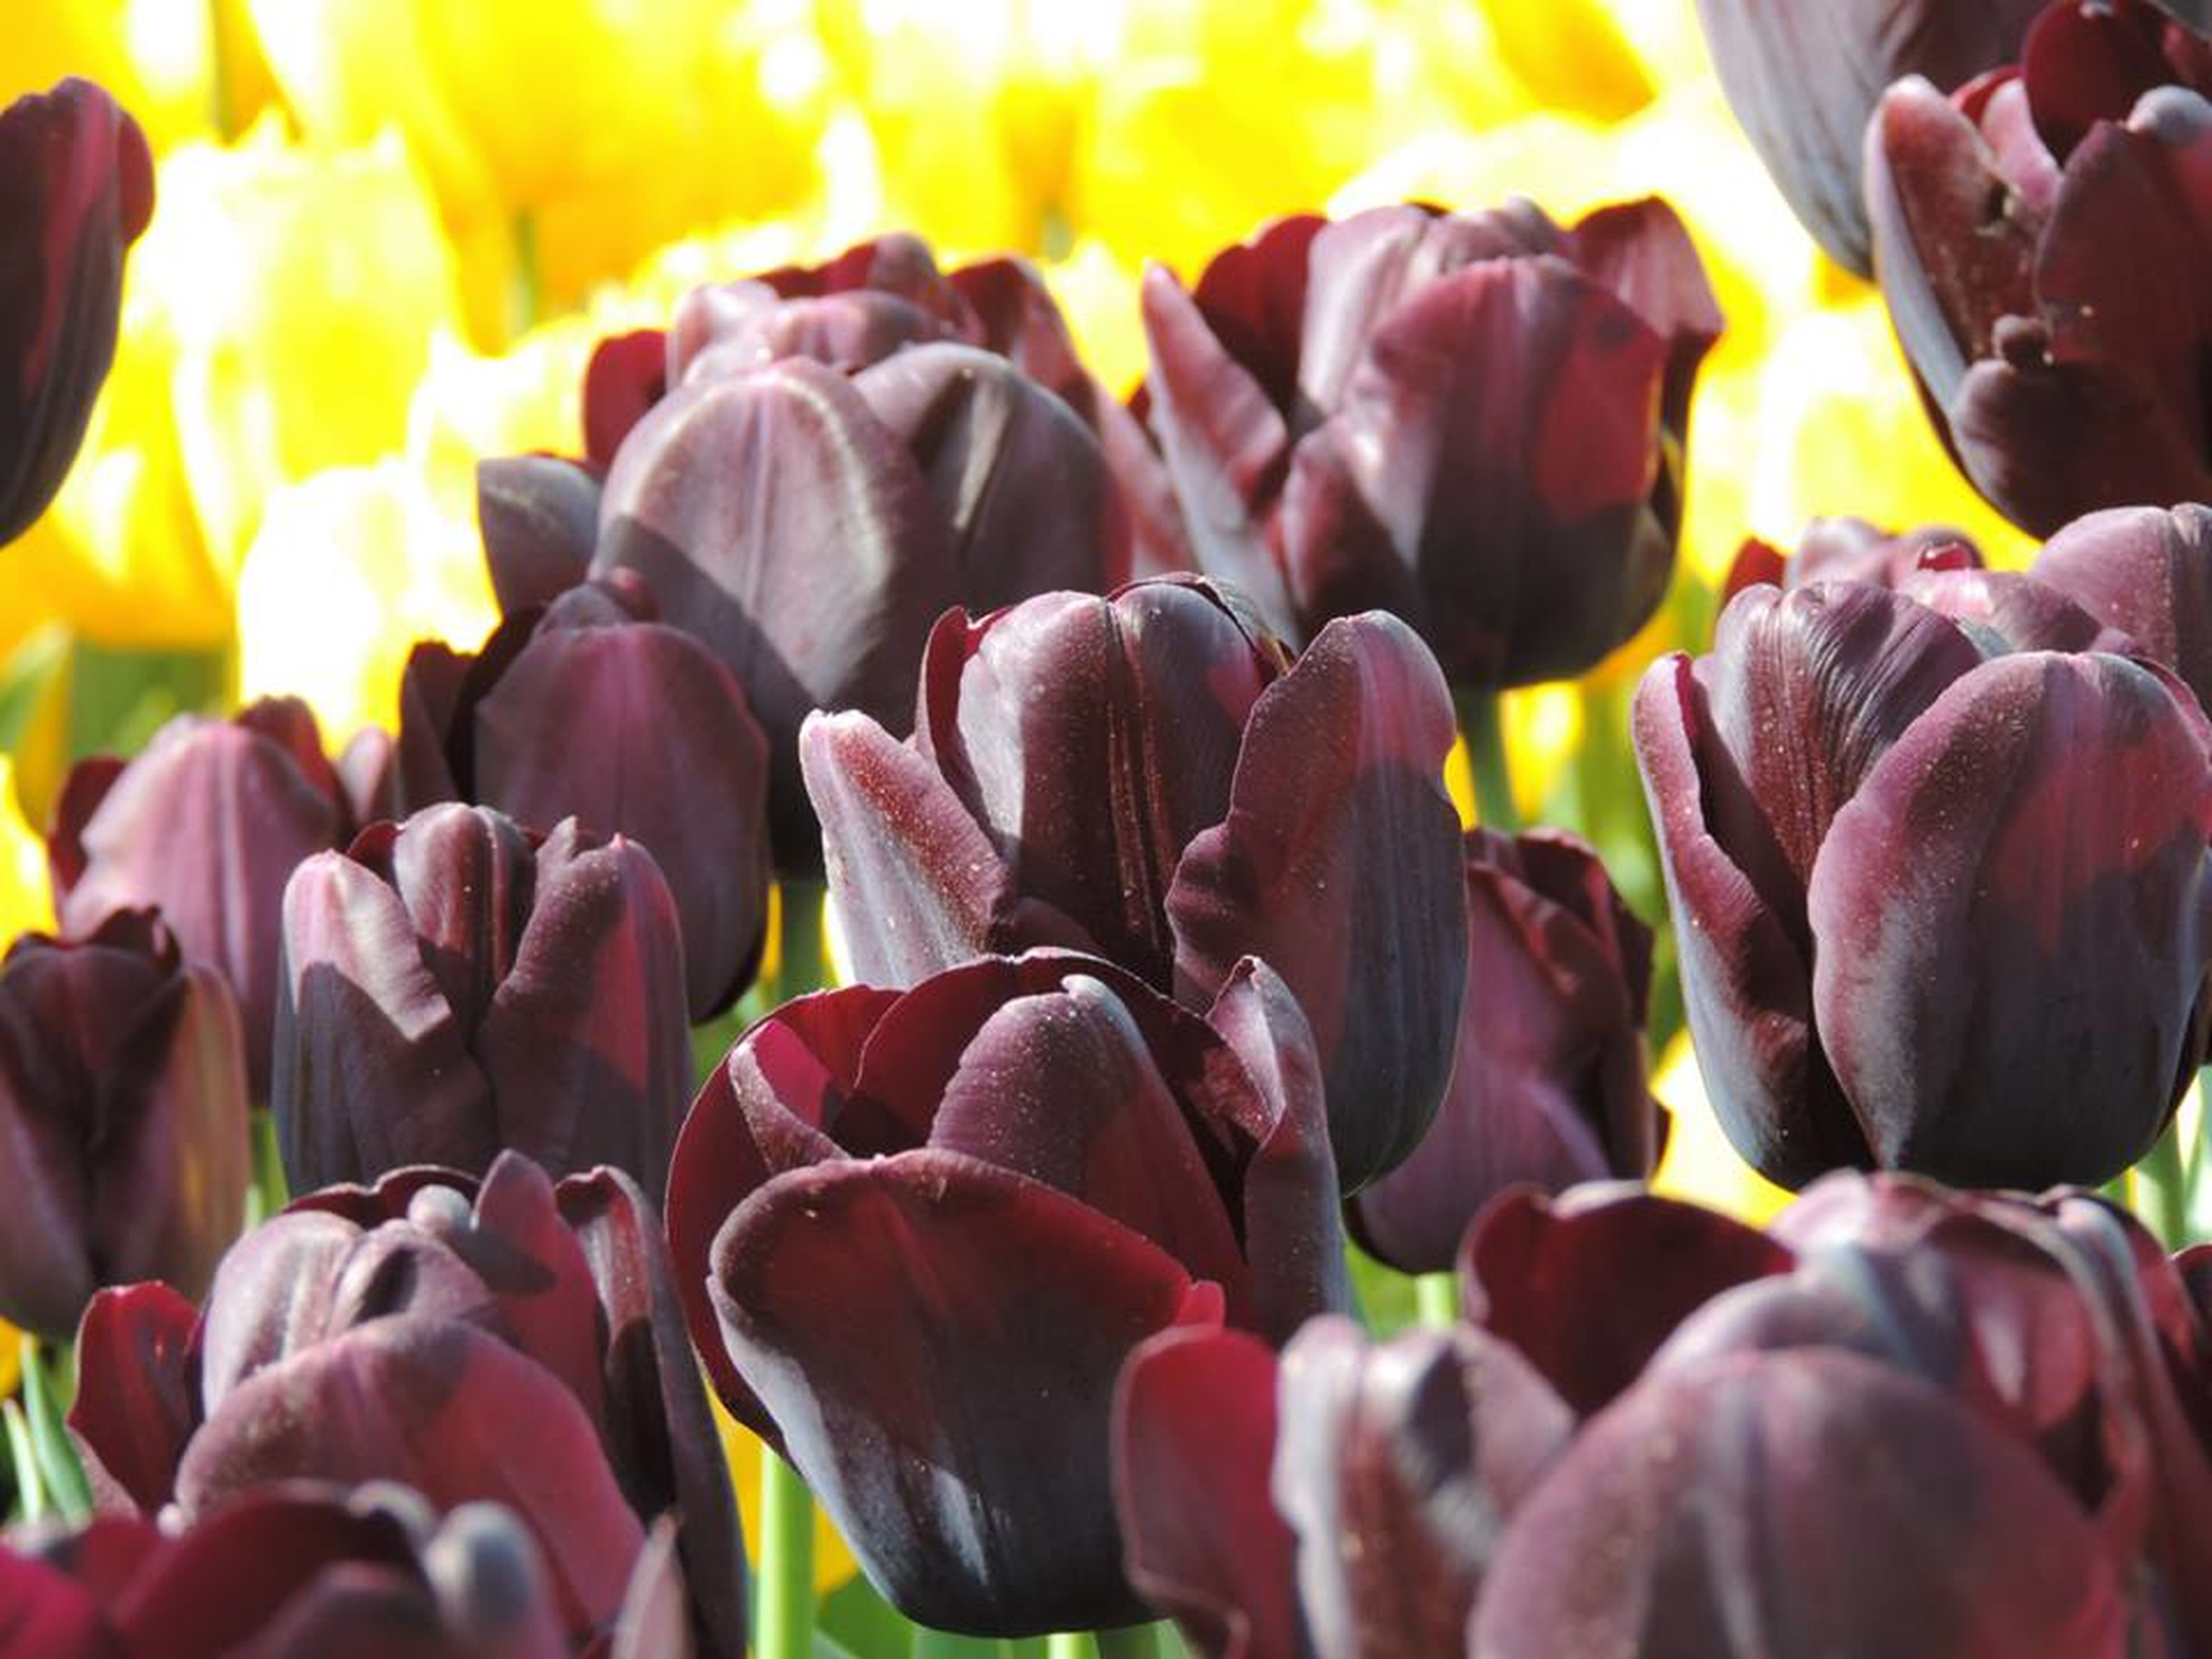 abundance, for sale, variation, large group of objects, full frame, backgrounds, tulip, retail, close-up, market stall, in a row, freshness, market, choice, multi colored, selective focus, outdoors, day, large group of people, focus on foreground